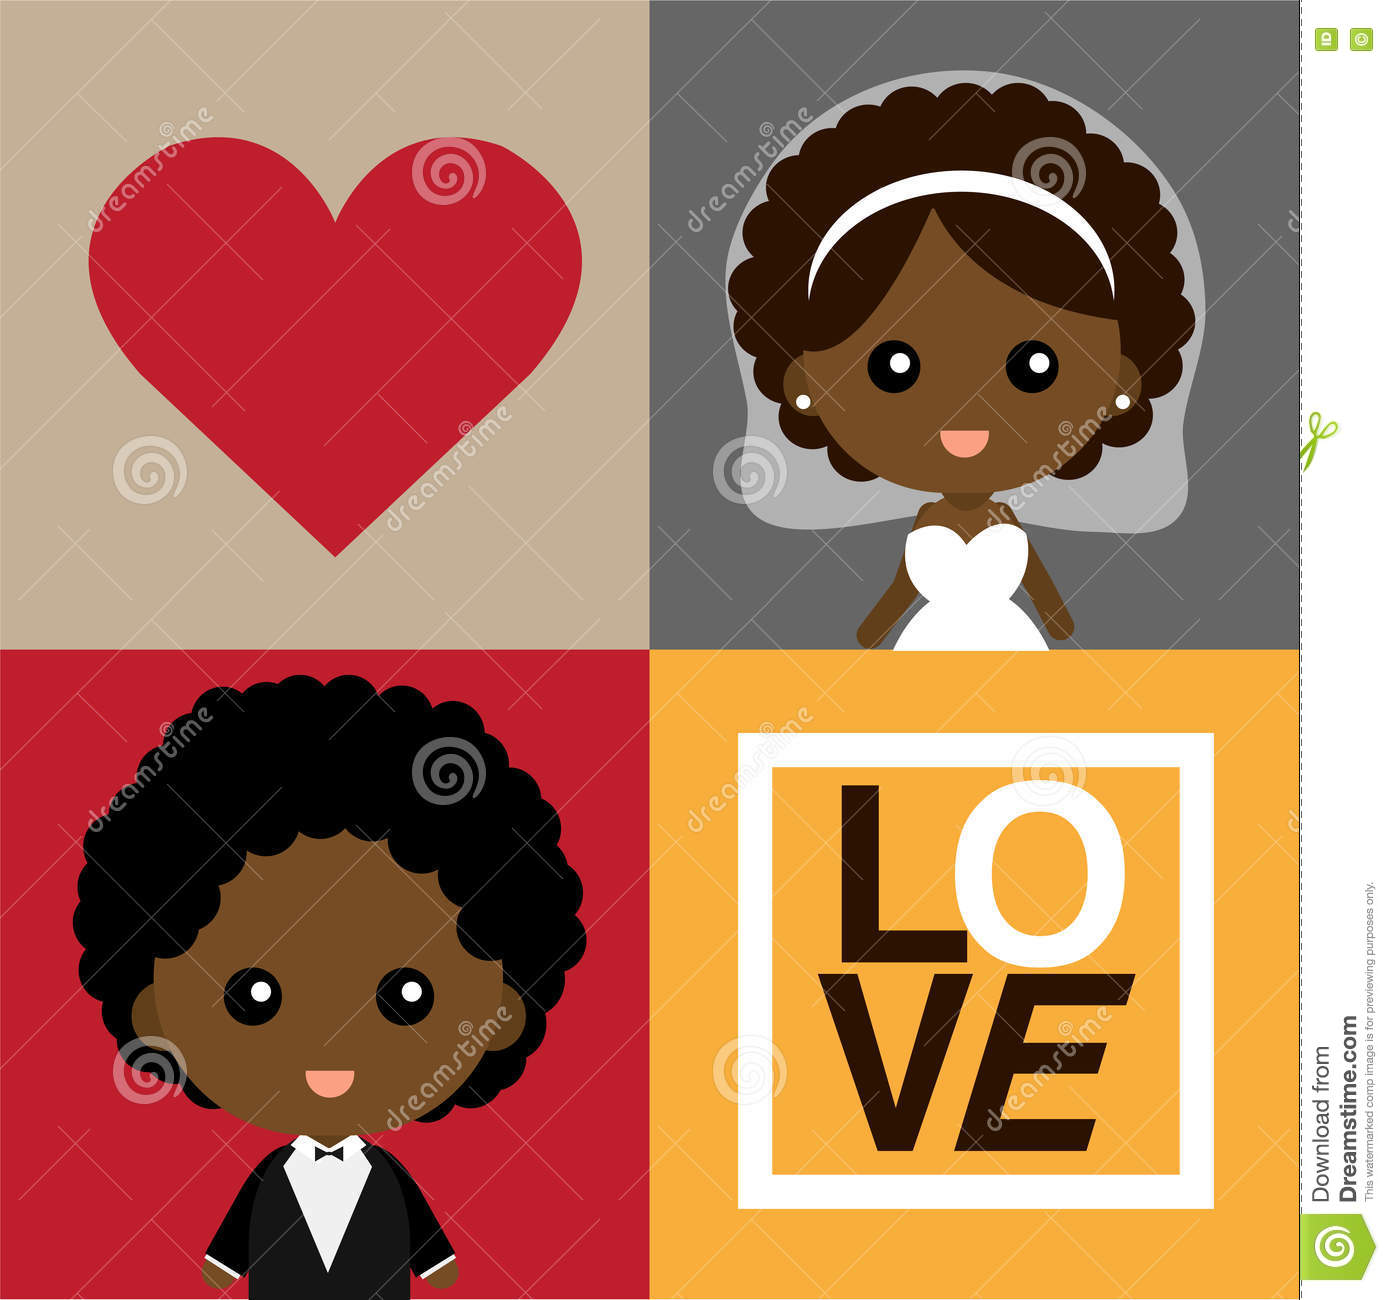 Cute Happy Black Groom And Bride Stock Vector - Illustration of save ...